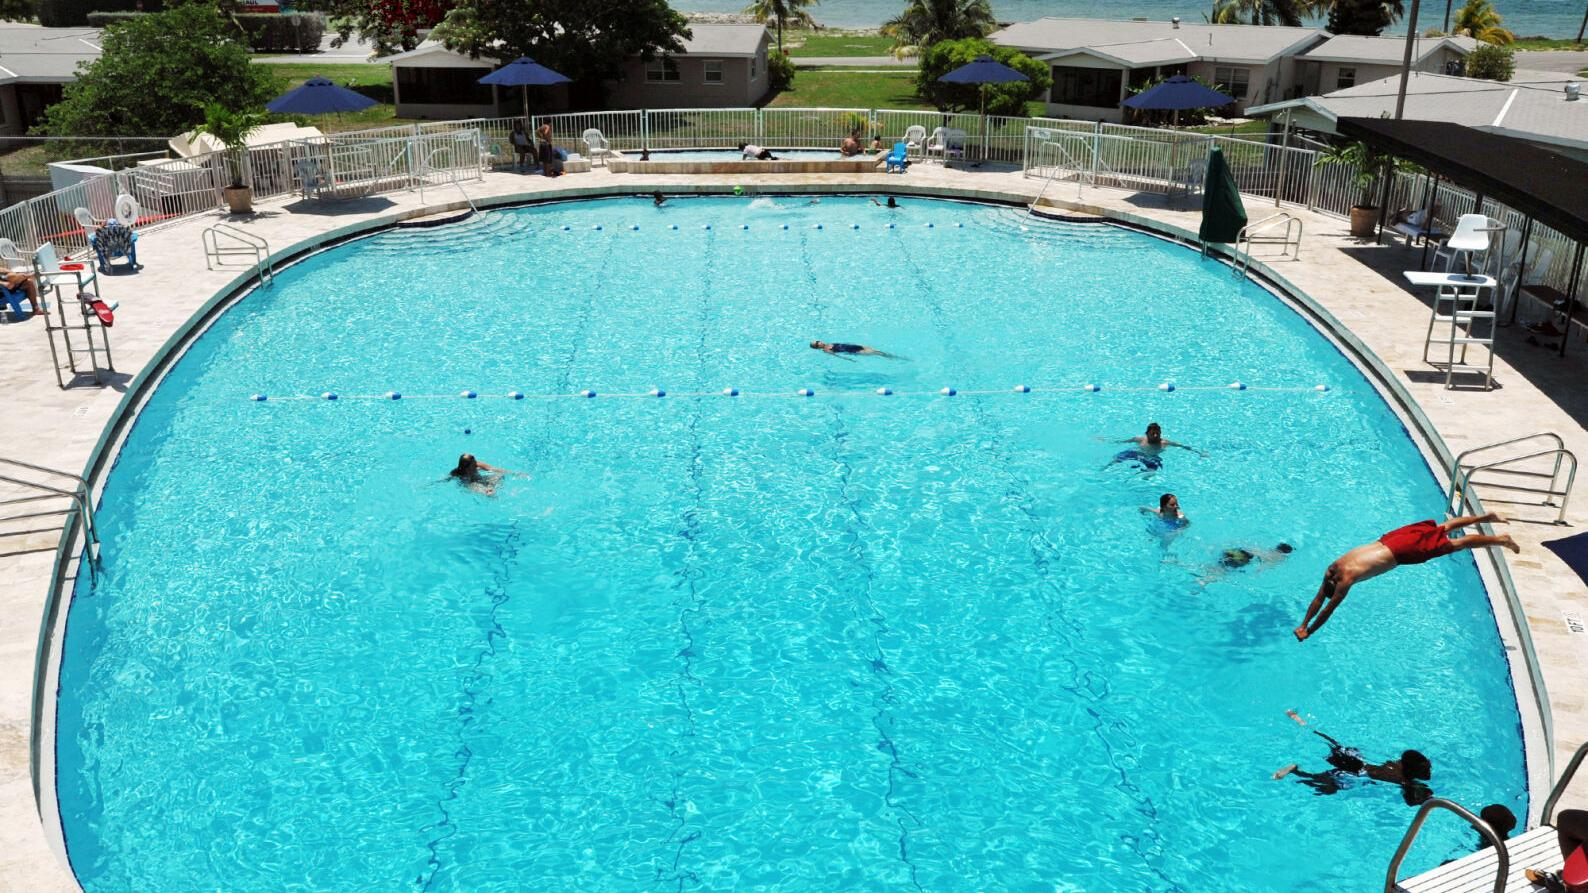 Bahama Village community pool is treading water